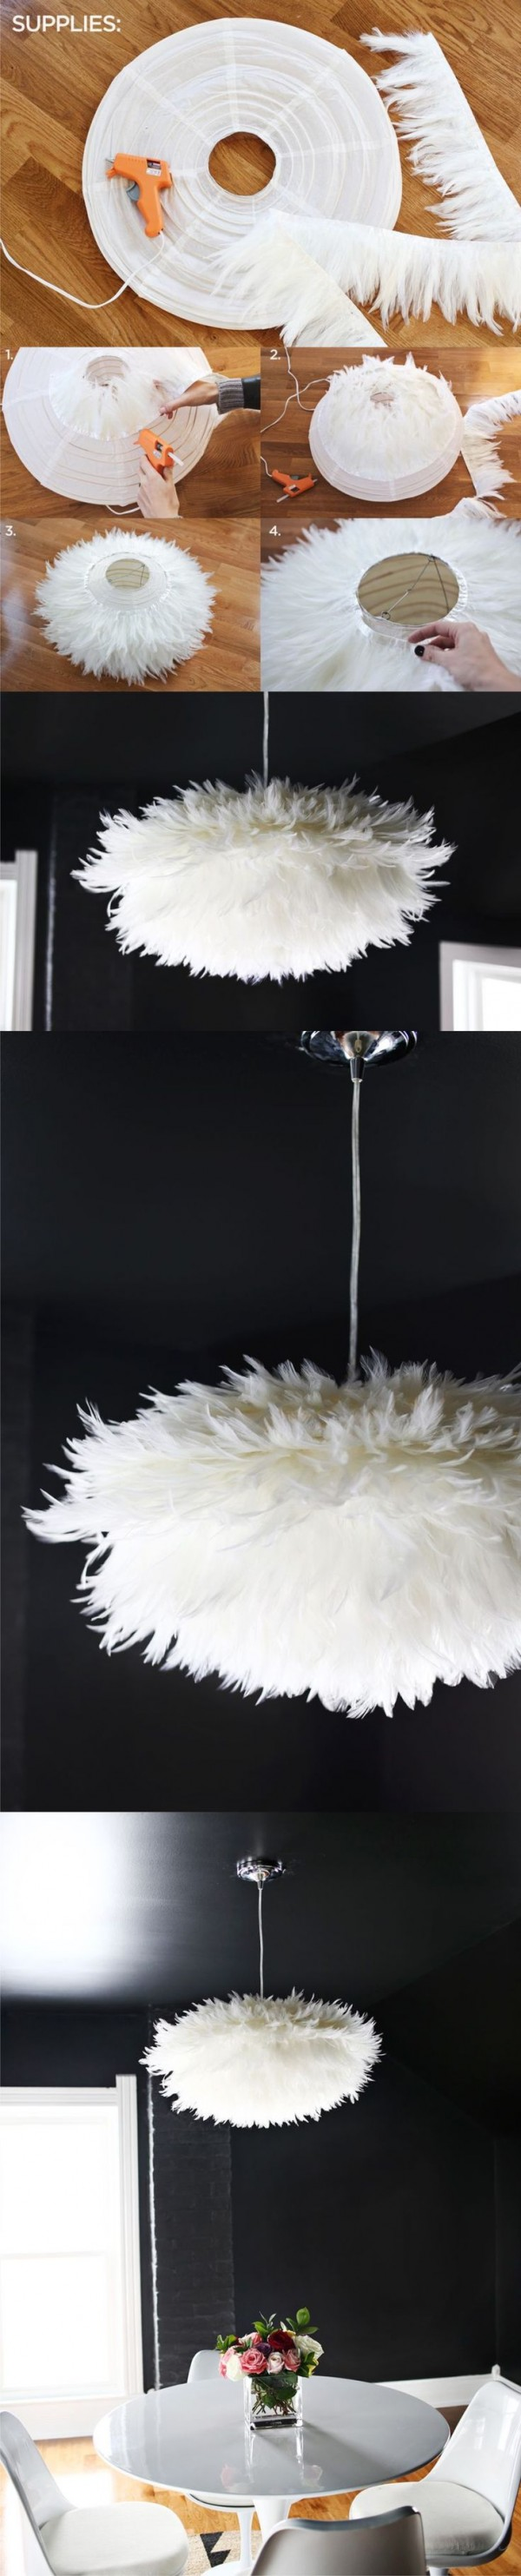 Artificial feathers lamp shades | Homemade Decorative Lamp Shade Ideas | FarmFoodFamily